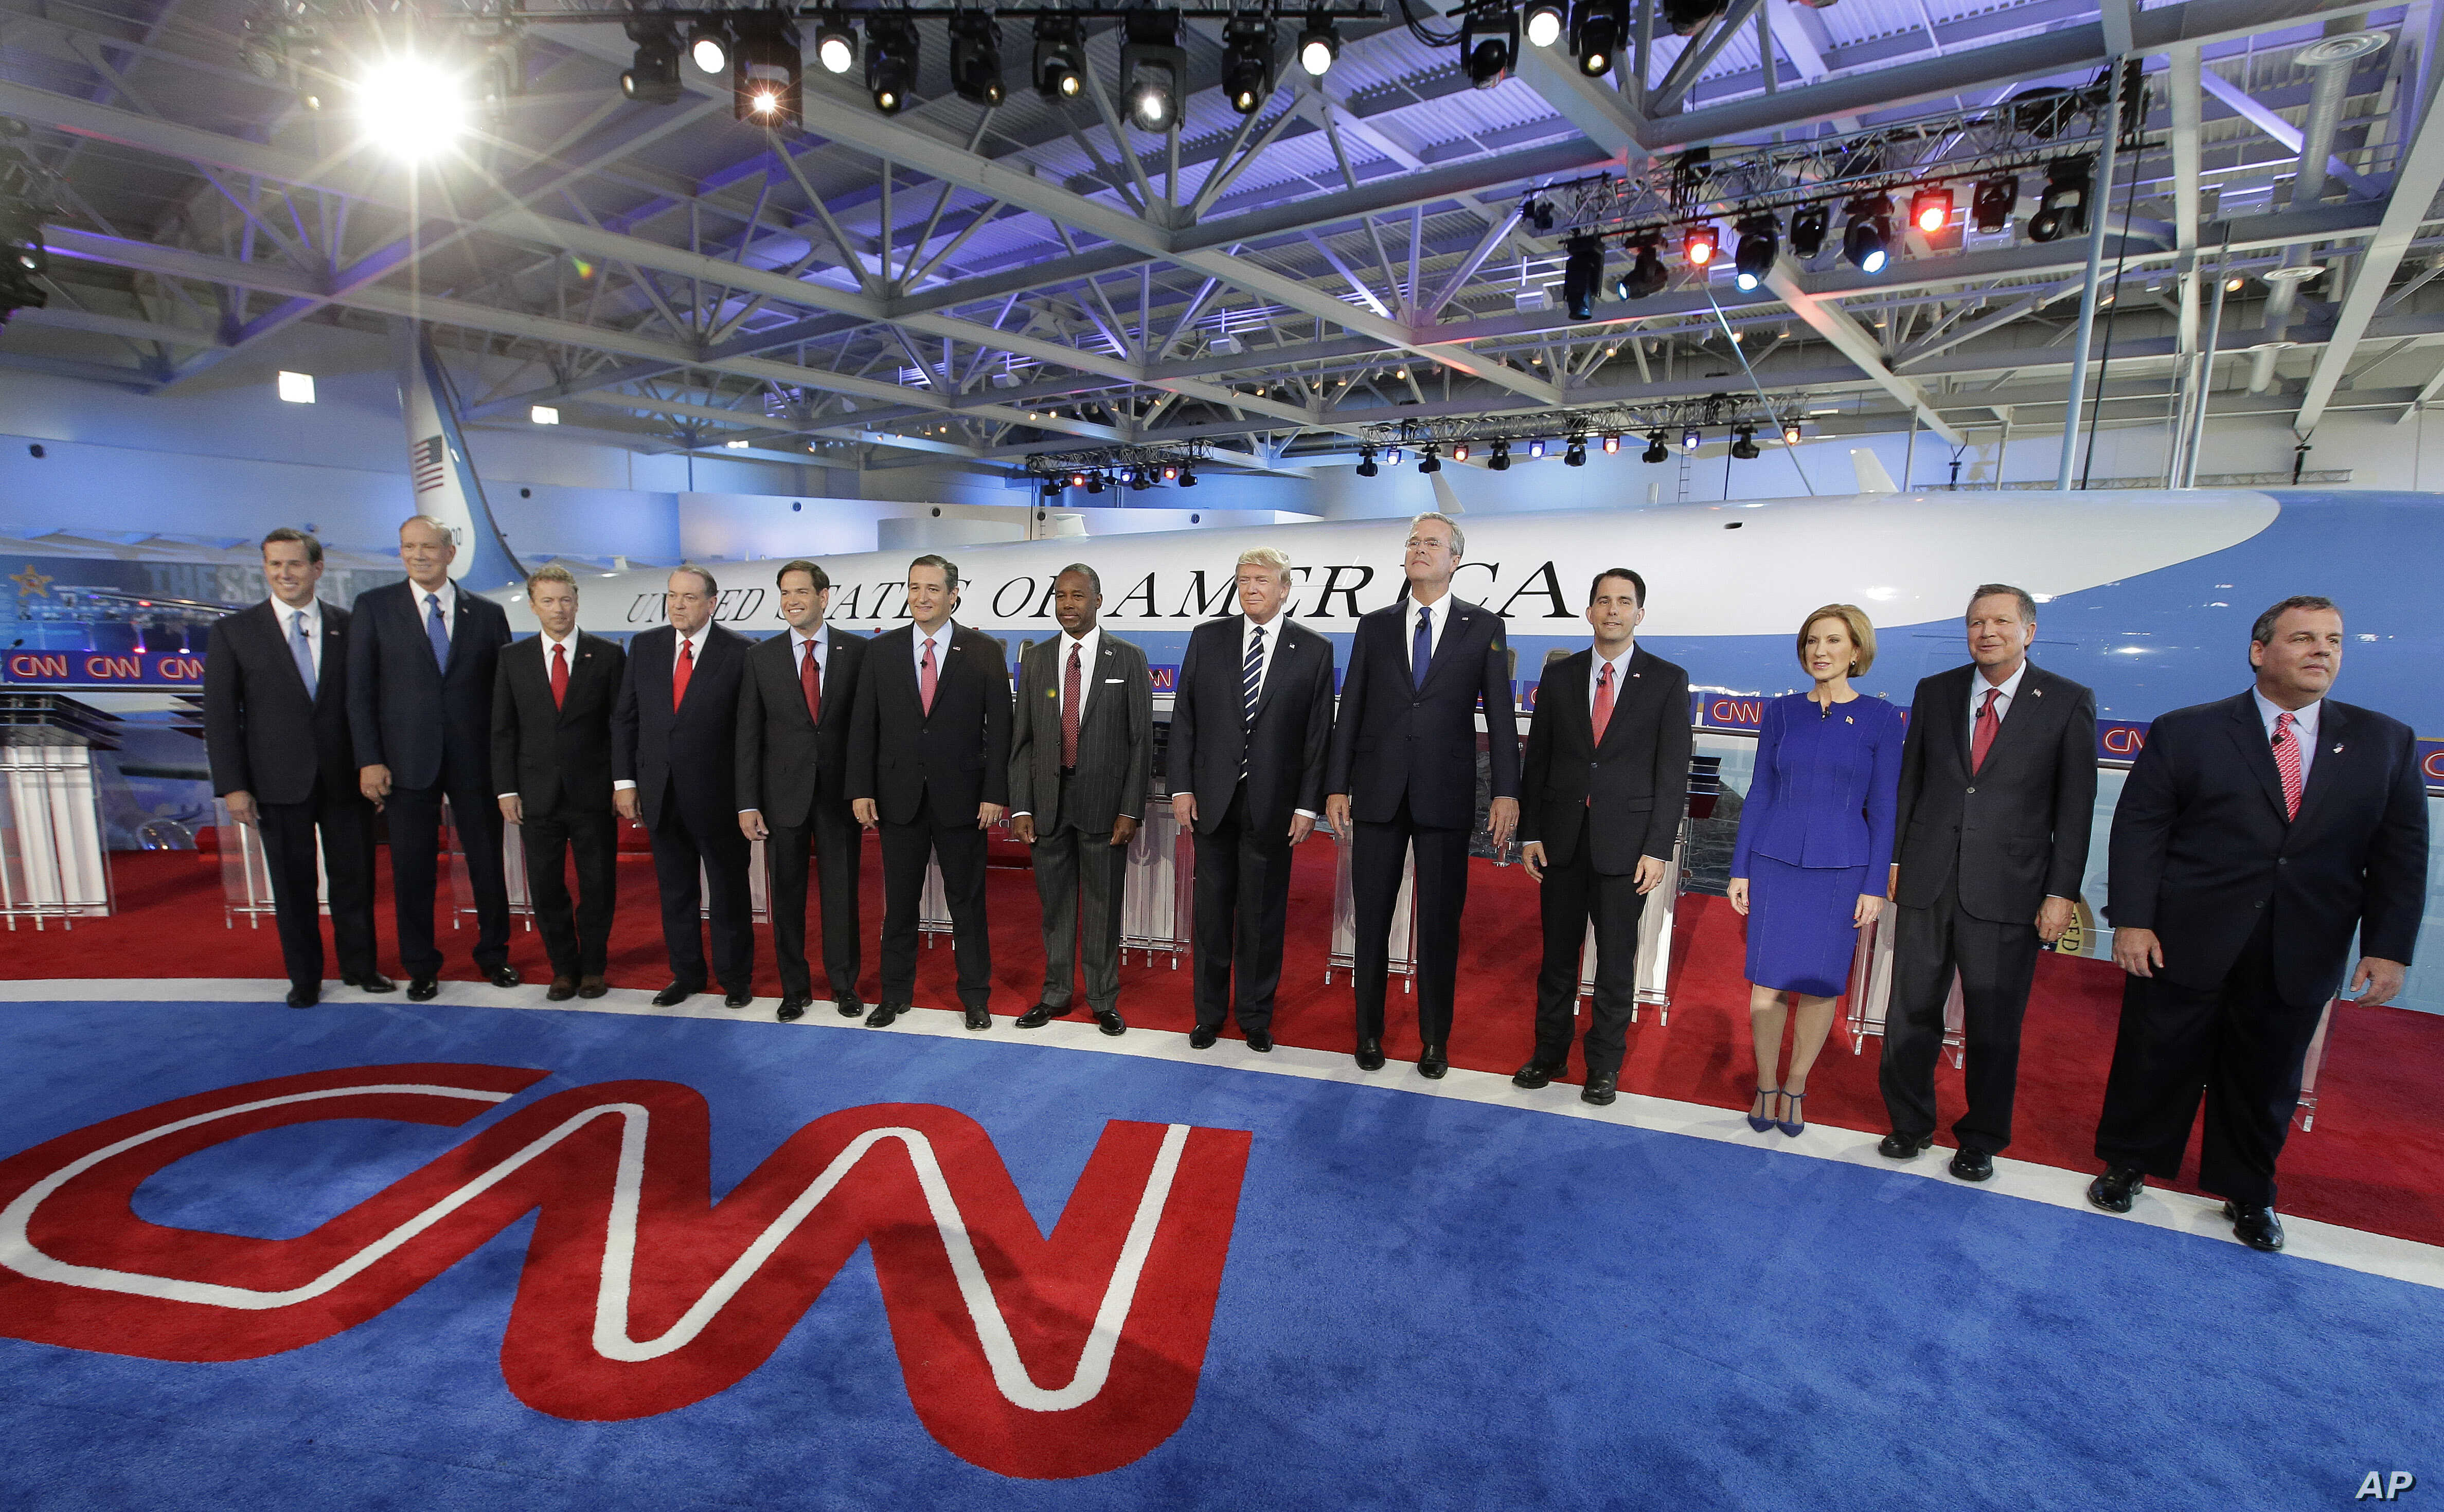 Republican presidential candidates take the stage during the CNN Republican presidential debate at the Ronald Reagan Presidential Library and Museum in Simi Valley, California, Sept. 16, 2015.